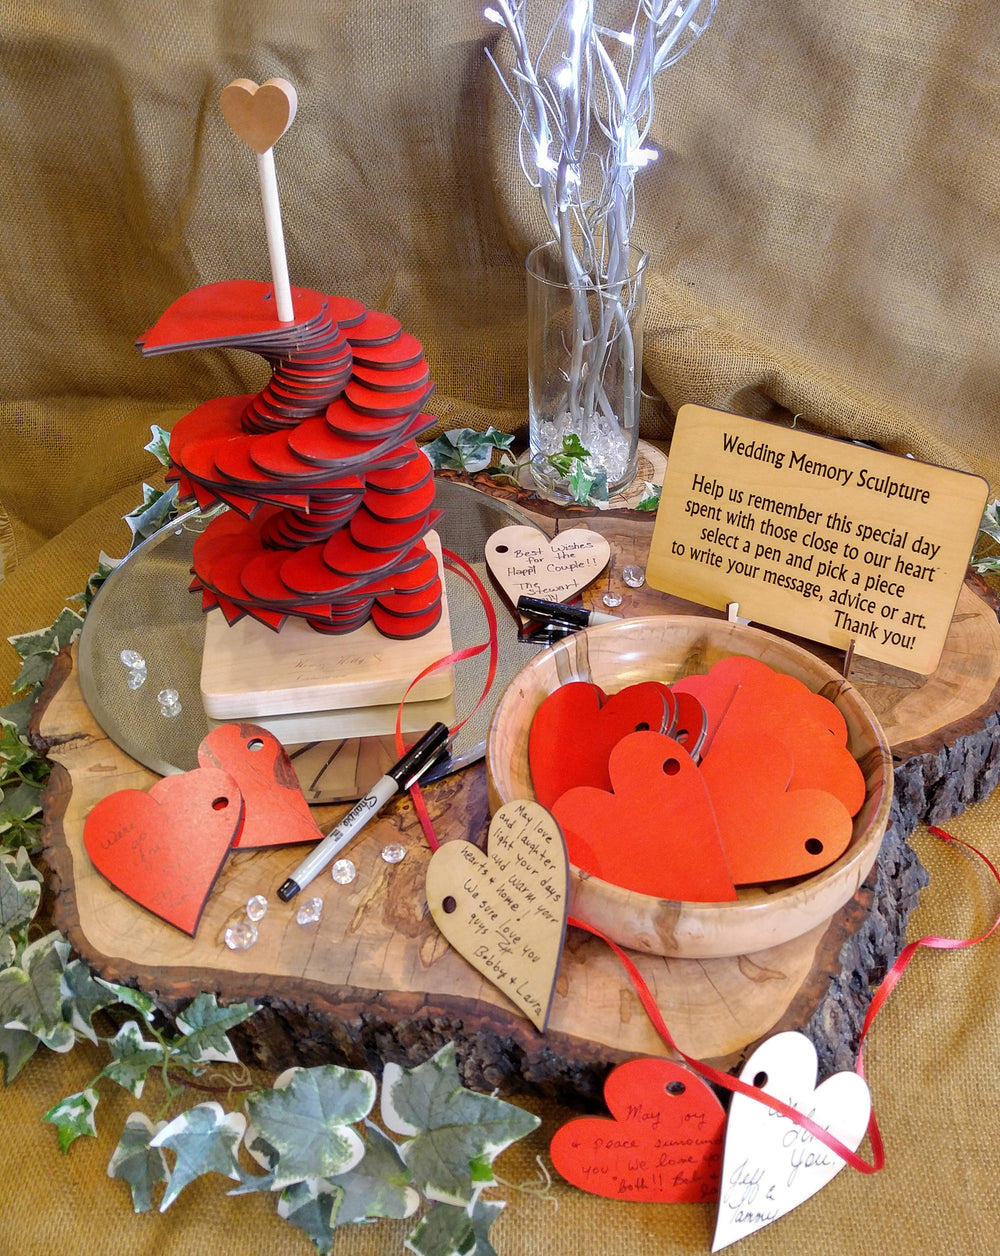 Red Hearts Memory Sculpture